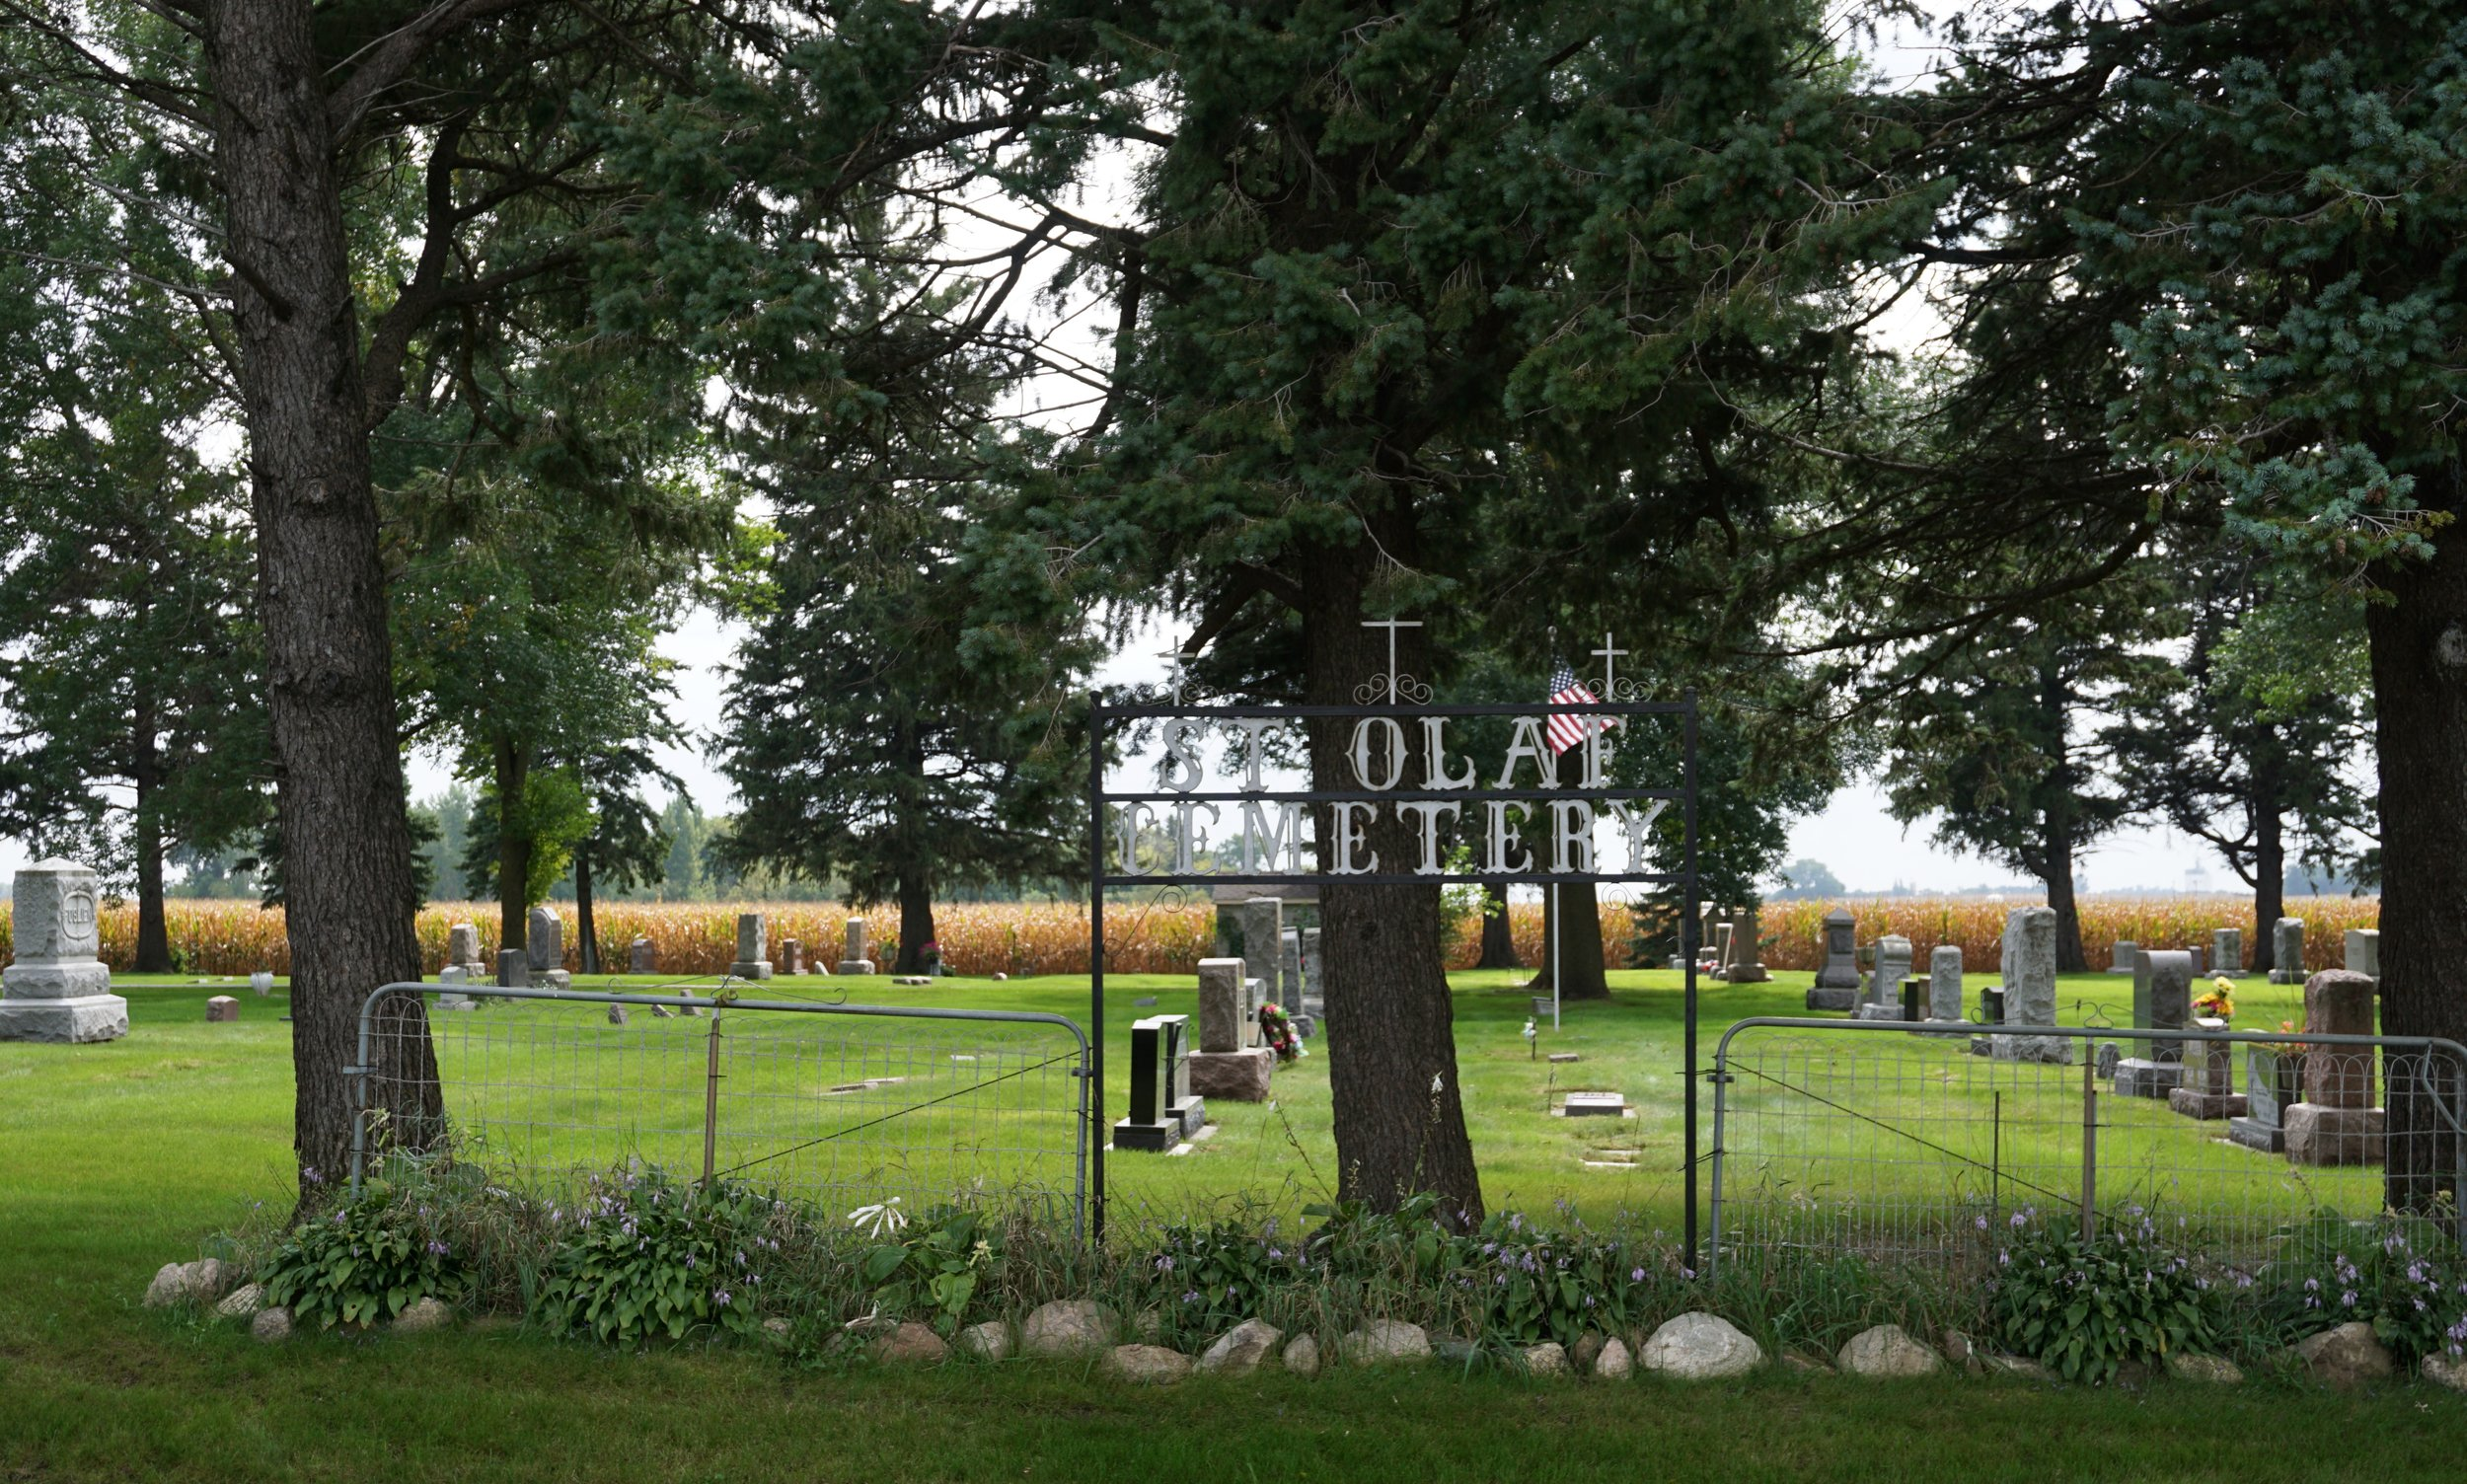 Olaf Haraldsson, Saint Olaf, is the patron saint of Norway. St. Olaf Cemetery is a peaceful place in Waseca County, in Minnesota.